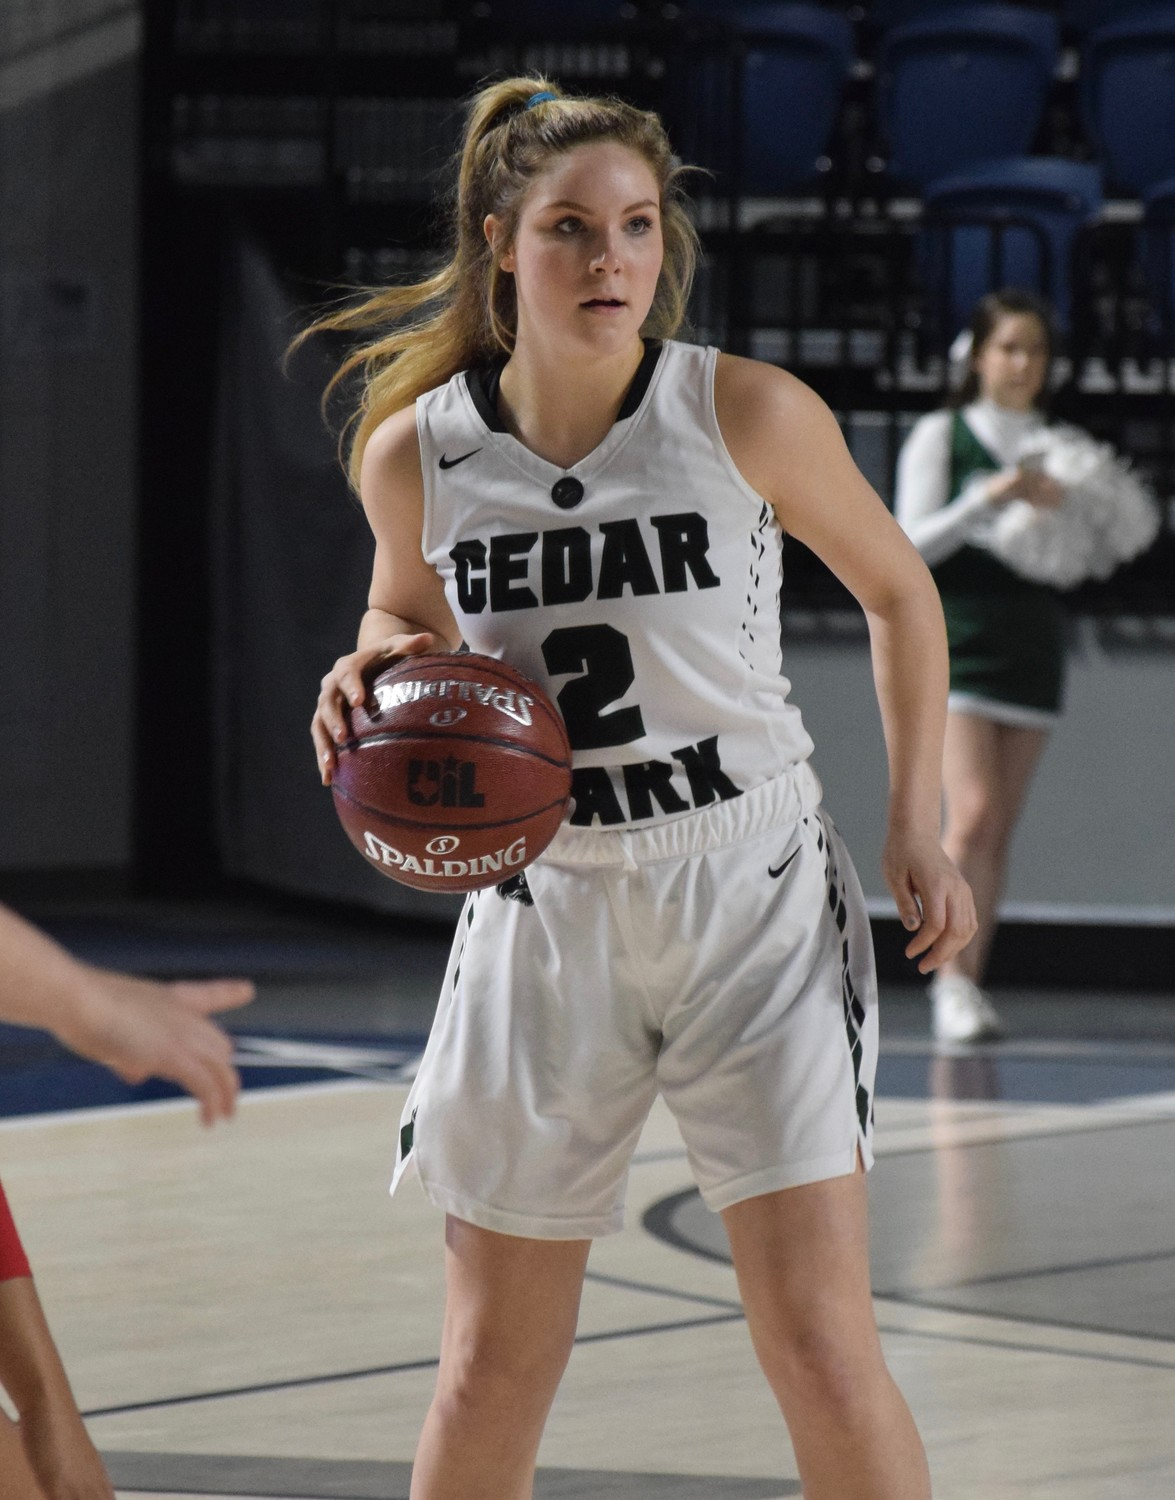 Cedar Park senior Jordan Ott was named the District 19-5A co-MVP with teammate Nicole Leff. The Lady Timberwolves made it to the regional semifinals for the first time in school history this season.